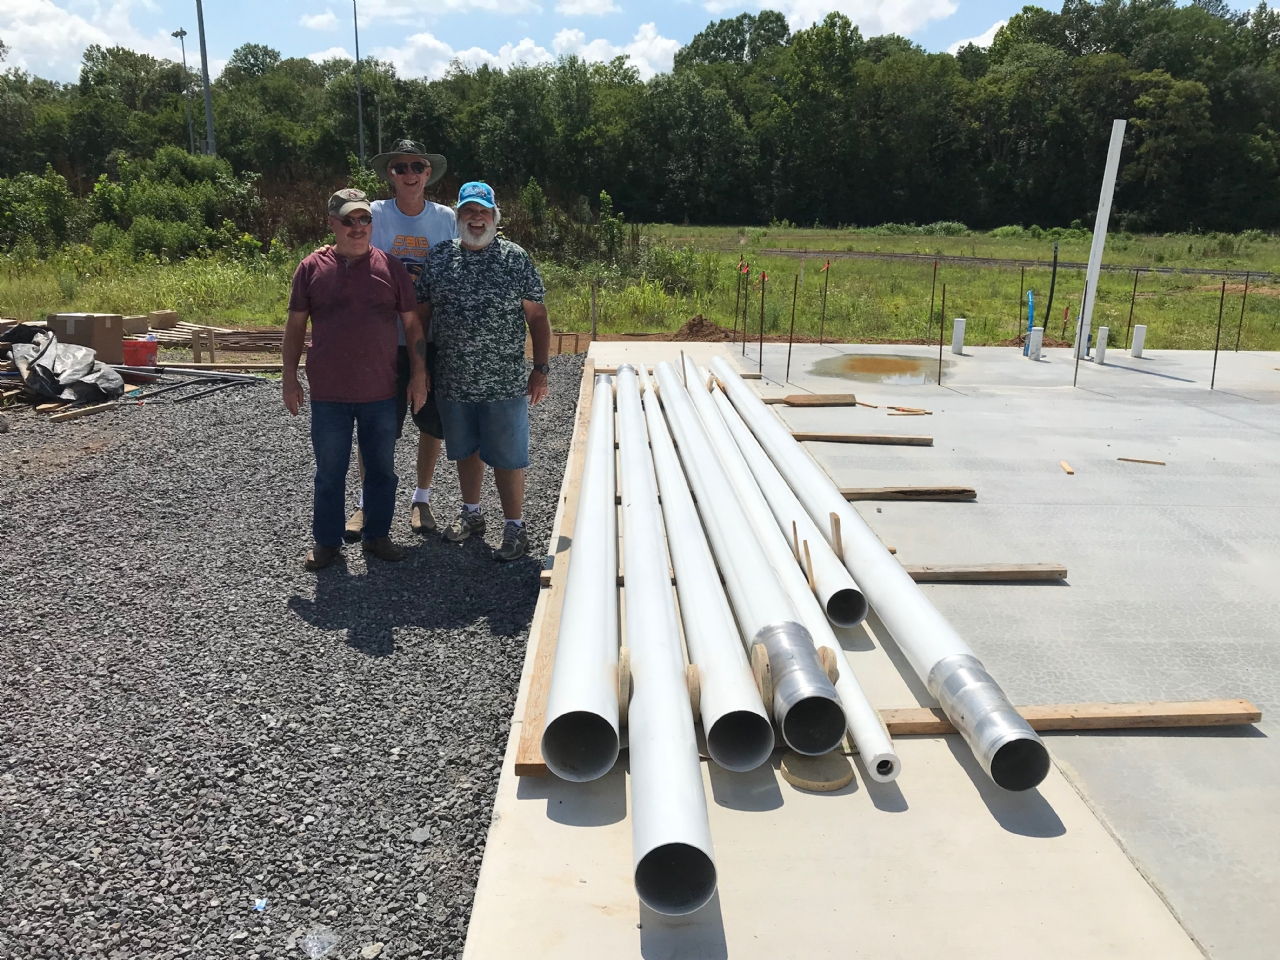 Three flag poles have been delivered and will soon be installed.  One 50' for American flag (8x12)and two 40' poles, one for state flag (5x8)and one for POW/MIA flag (5x8).